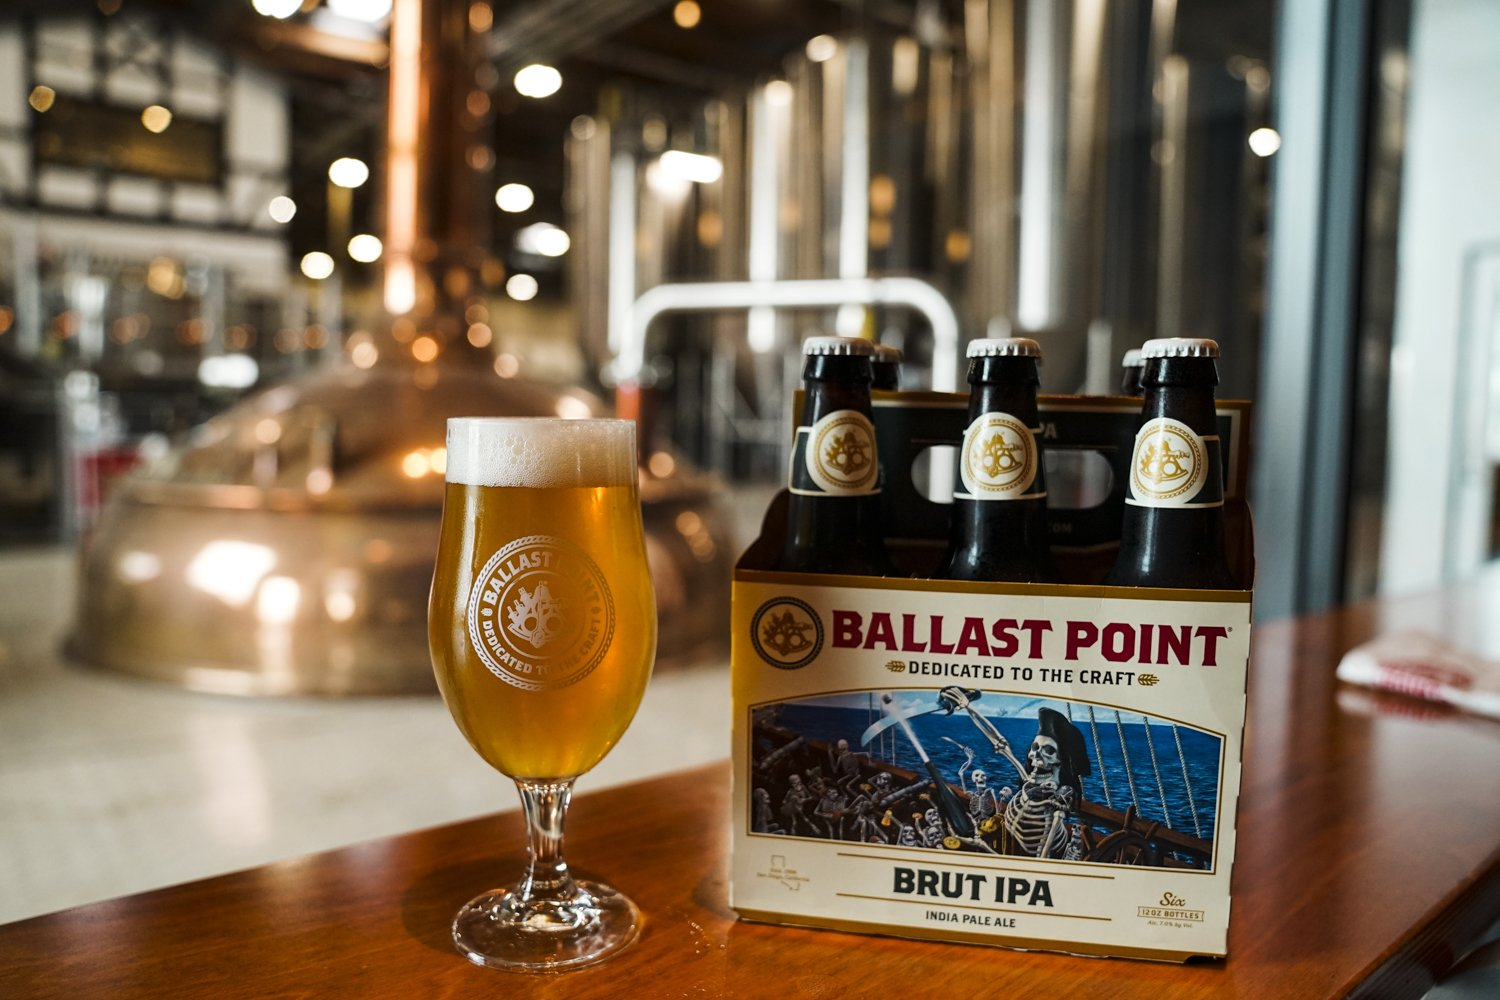 Constellation Brands Releases Ballast Point Passing Haze Ipa And Brut Ipa photo